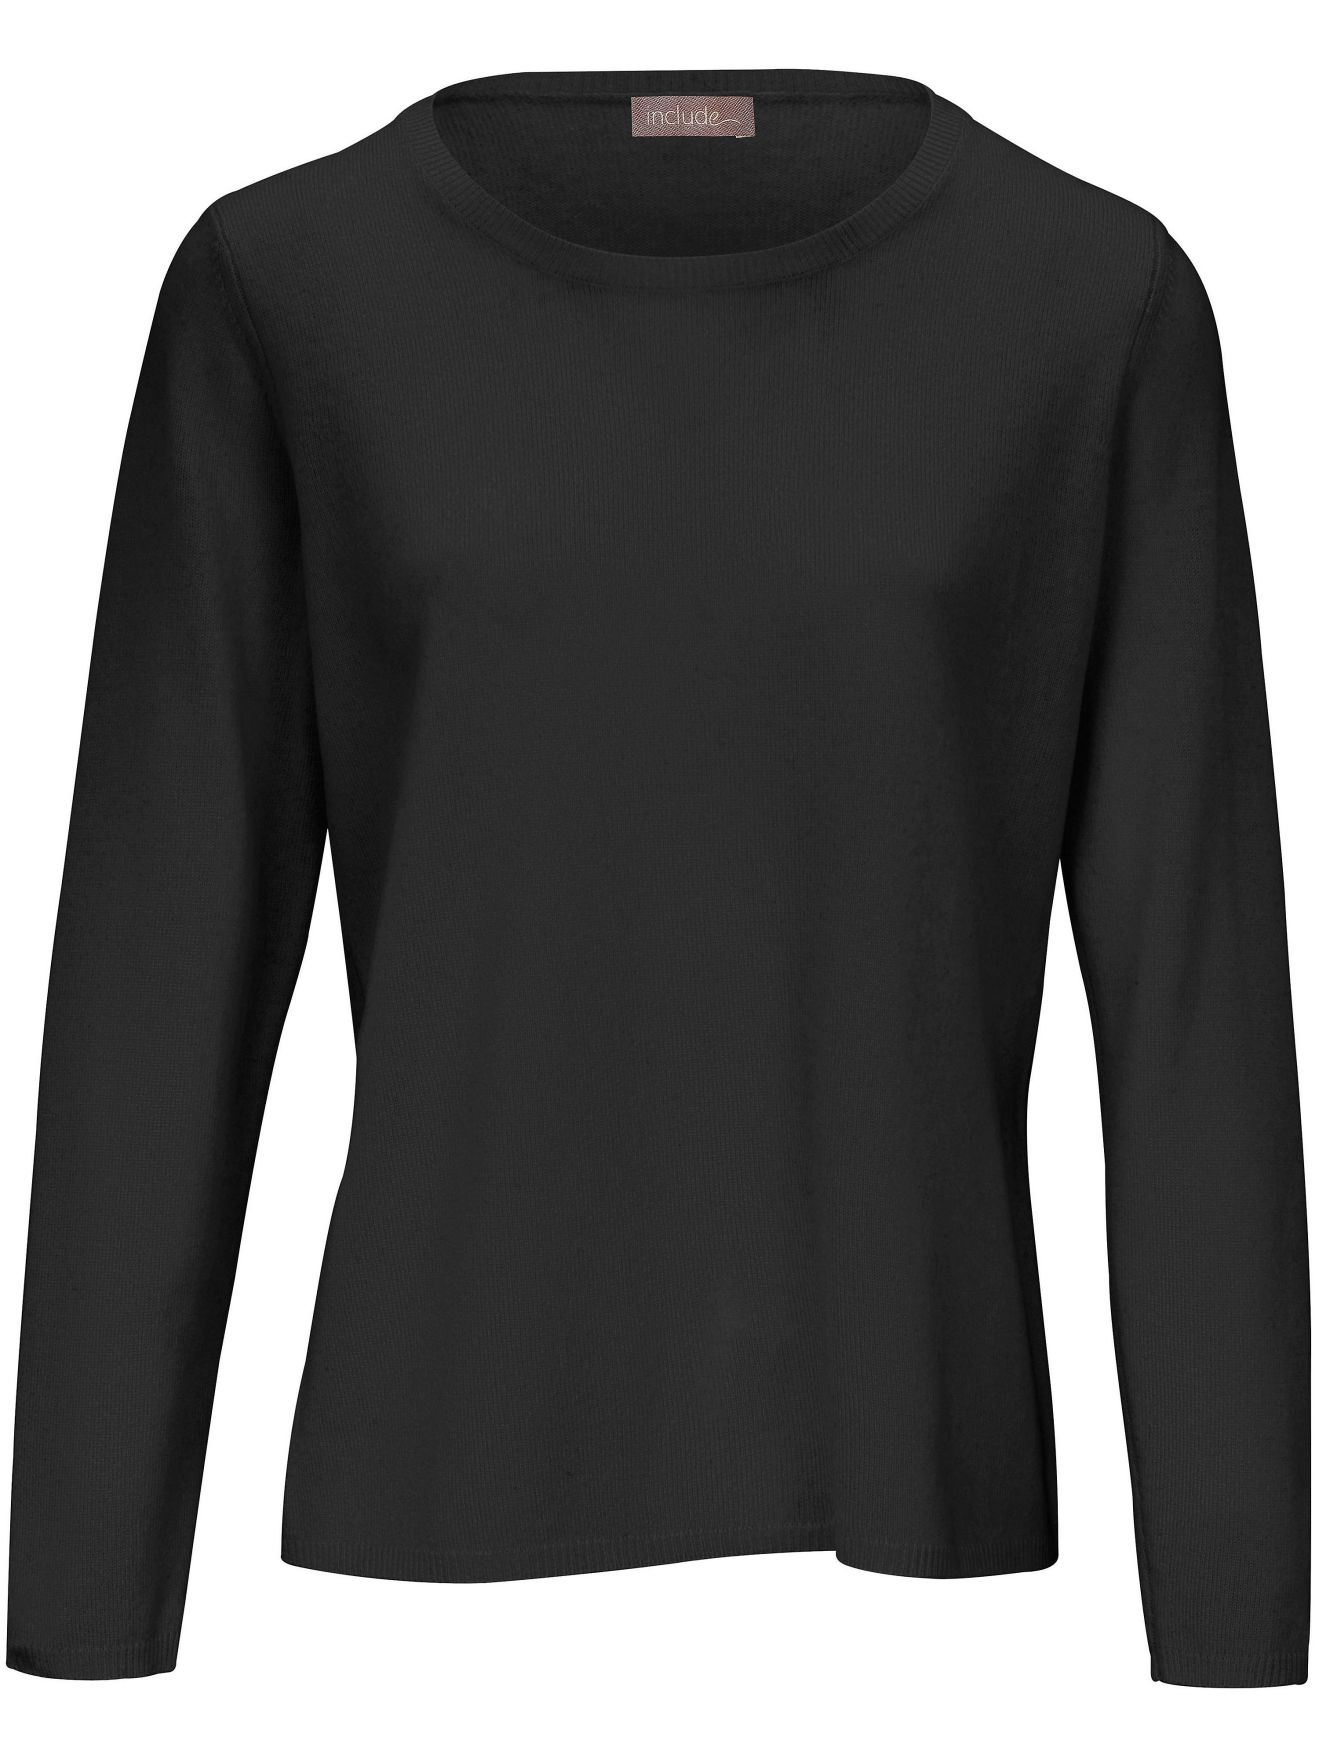 Pullover in a slightly tailored cut include black size: 12 Qody PCI-E Extension Cable: 1X to 16X Qody PCI-E Extension Cable: 1X to 16X  851337 PACK F 120617